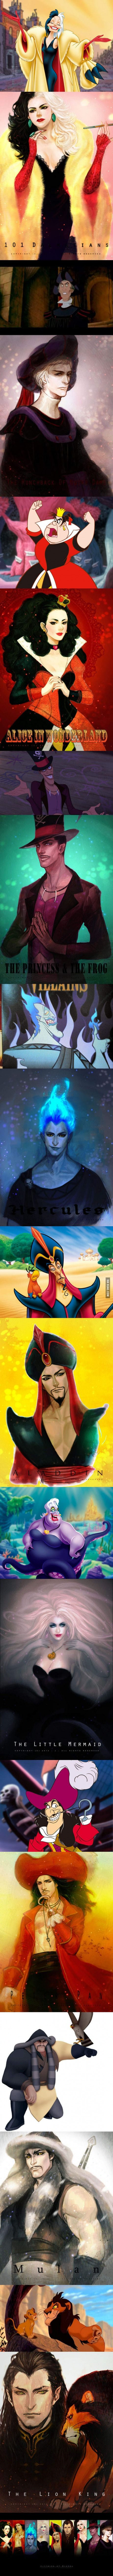 Beautiful Disney Vilains